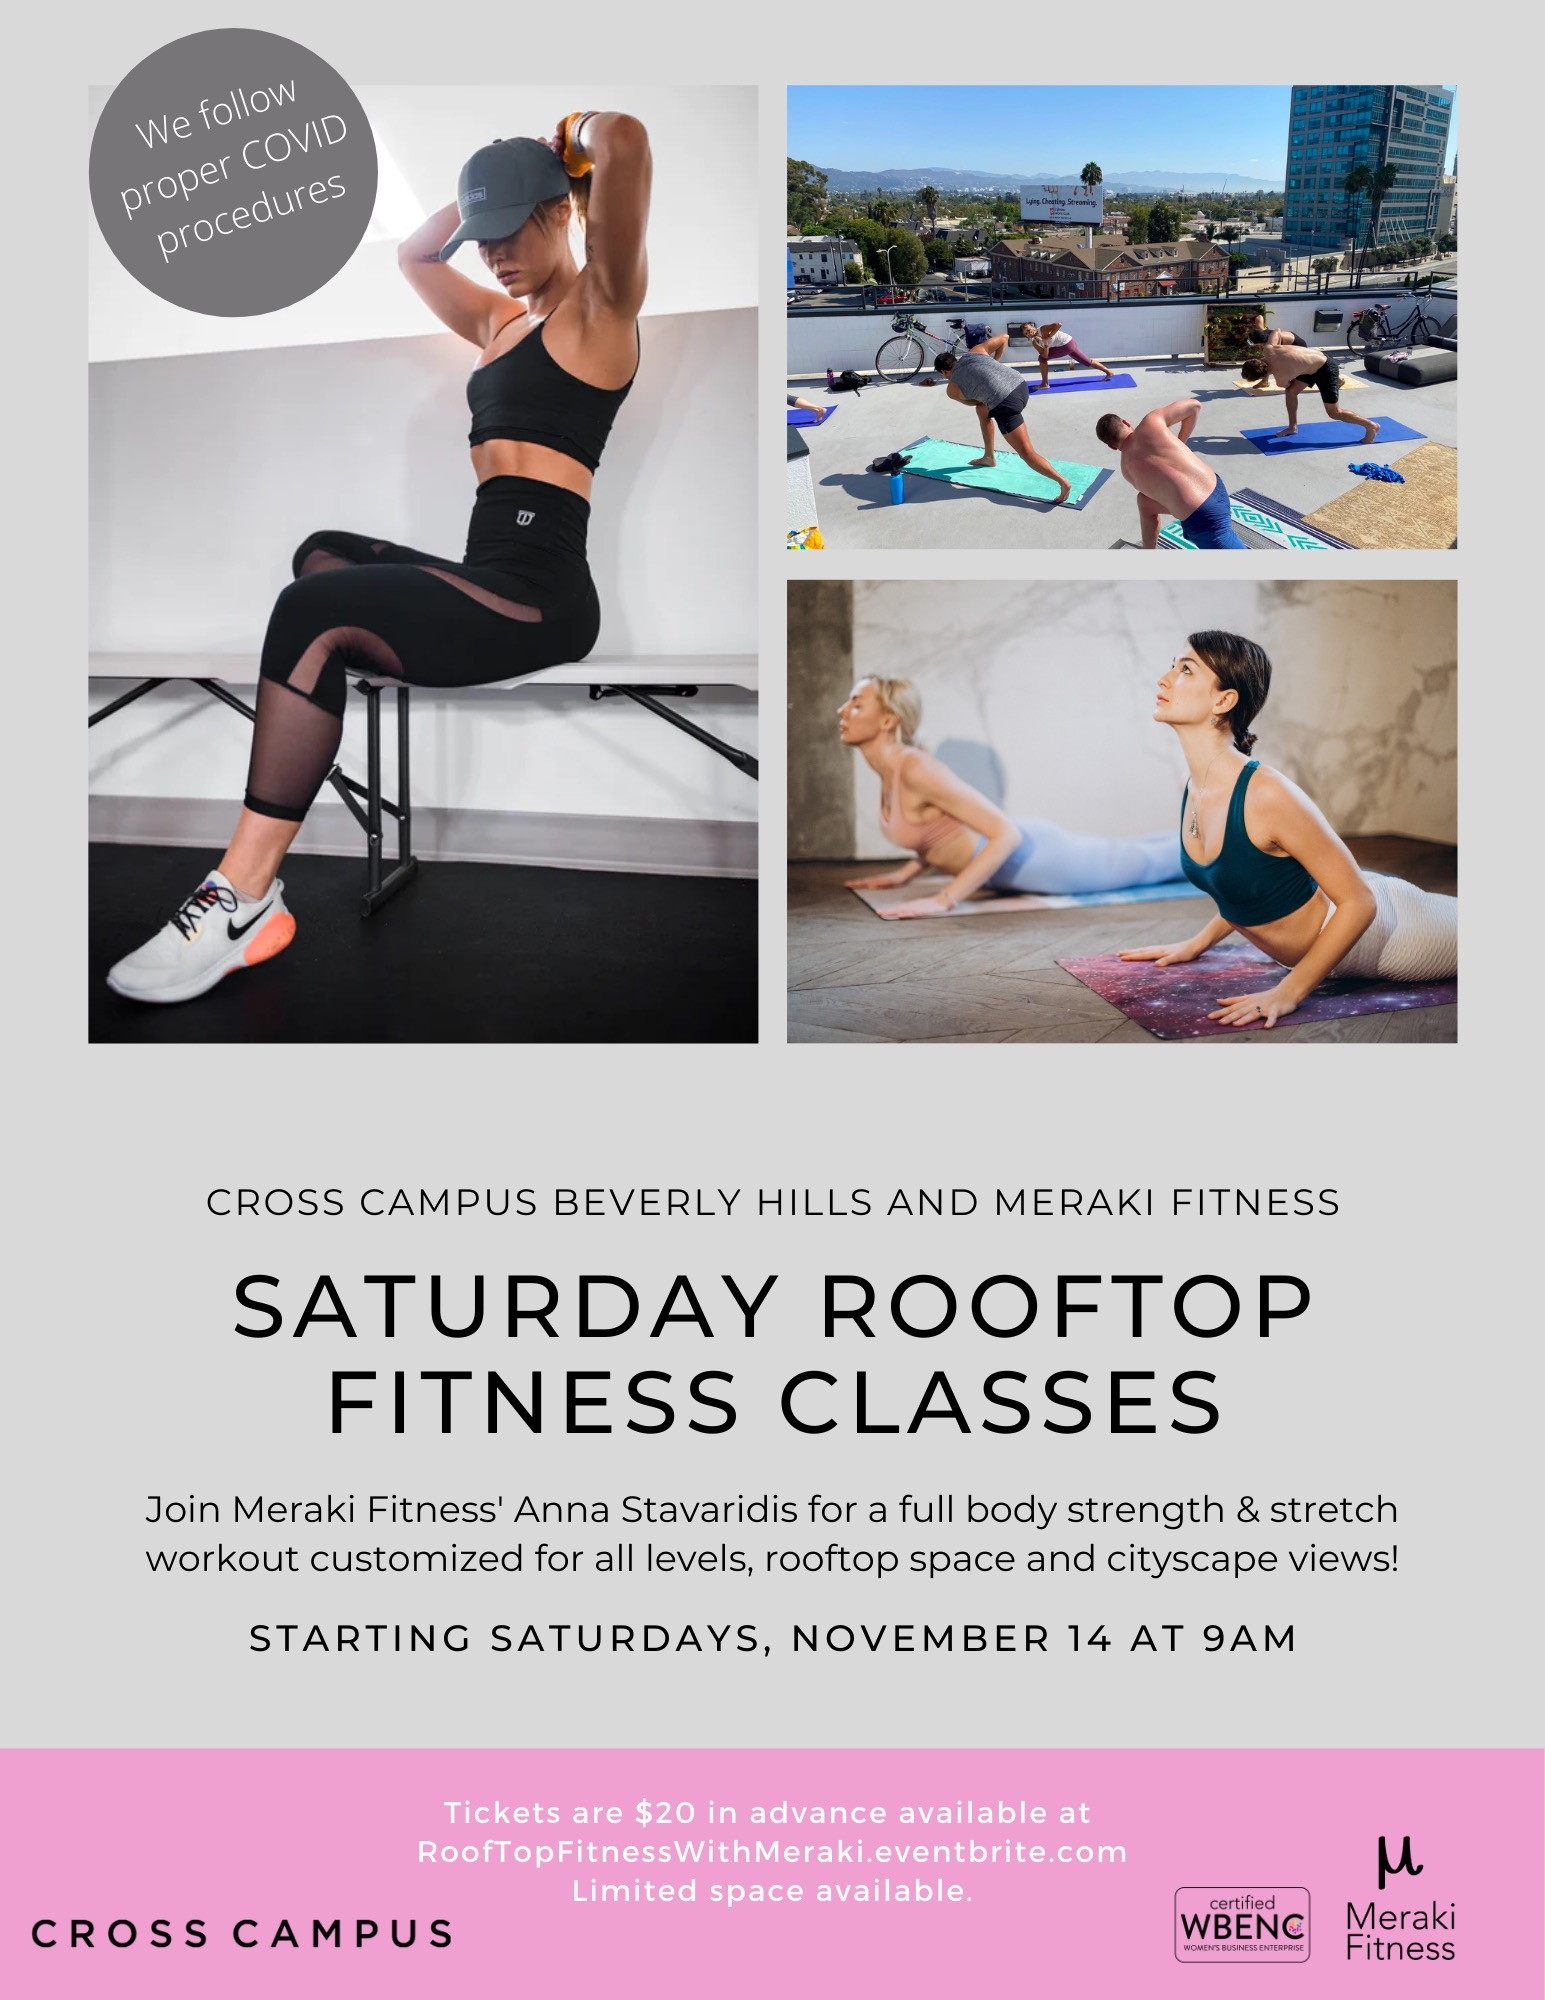 Saturday Rooftop Workouts with Meraki Fitness